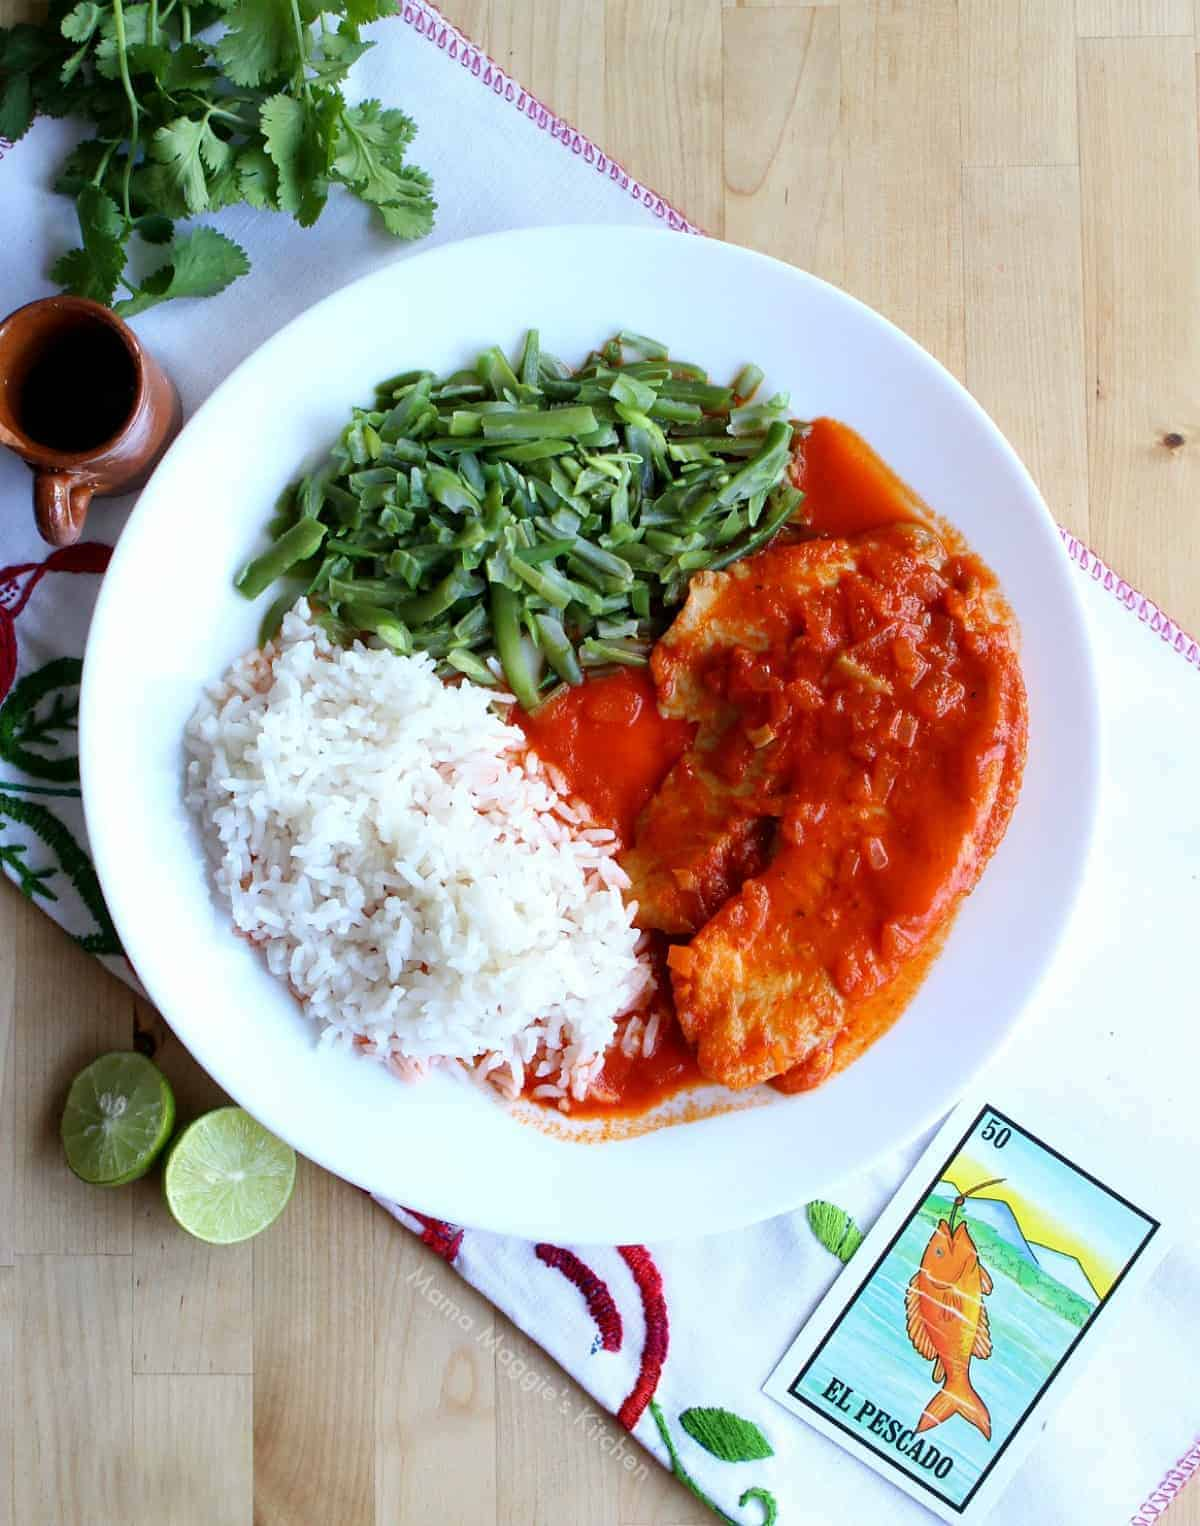 "Pescado a la Diabla is served on a plate of rice and green beans alongside lime and coriander. ""Width ="" 1200 ""height ="" 1526 ""class ="" lazy lazy-hidden alignnone size-full wp-image-17747 ""srcset ="" ""srcset ="" https://inmamamaggieskitchen.com/wp-content/uploads/2020 /03/Pescado-a-la-Diabla-2.jpg 1200w, https://inmamaggieskitchen.com/wp-content/uploads/2020 /03/Pescado-a-la-Diabla-2-236x300.jpg 236w, https : //inmamamaggieskitchen.com/wp-content/uploads/2020/03/Pescado-a-la-Diabla-2-805x1024.jpg 805w, https://inmamamaggieskitchen.com/wp-content/uploads/2020/03/ Pescado-a-la-Diabla-2-768x977.jpg 768w, https://inmamaggieskitchen.com/wp-content/uploads/2020/ 03 / Pescado-a-la-Diabla-2-735x935.jpg 735w ""sizes = ""(max width: 1200px) 100vw, 1200px"